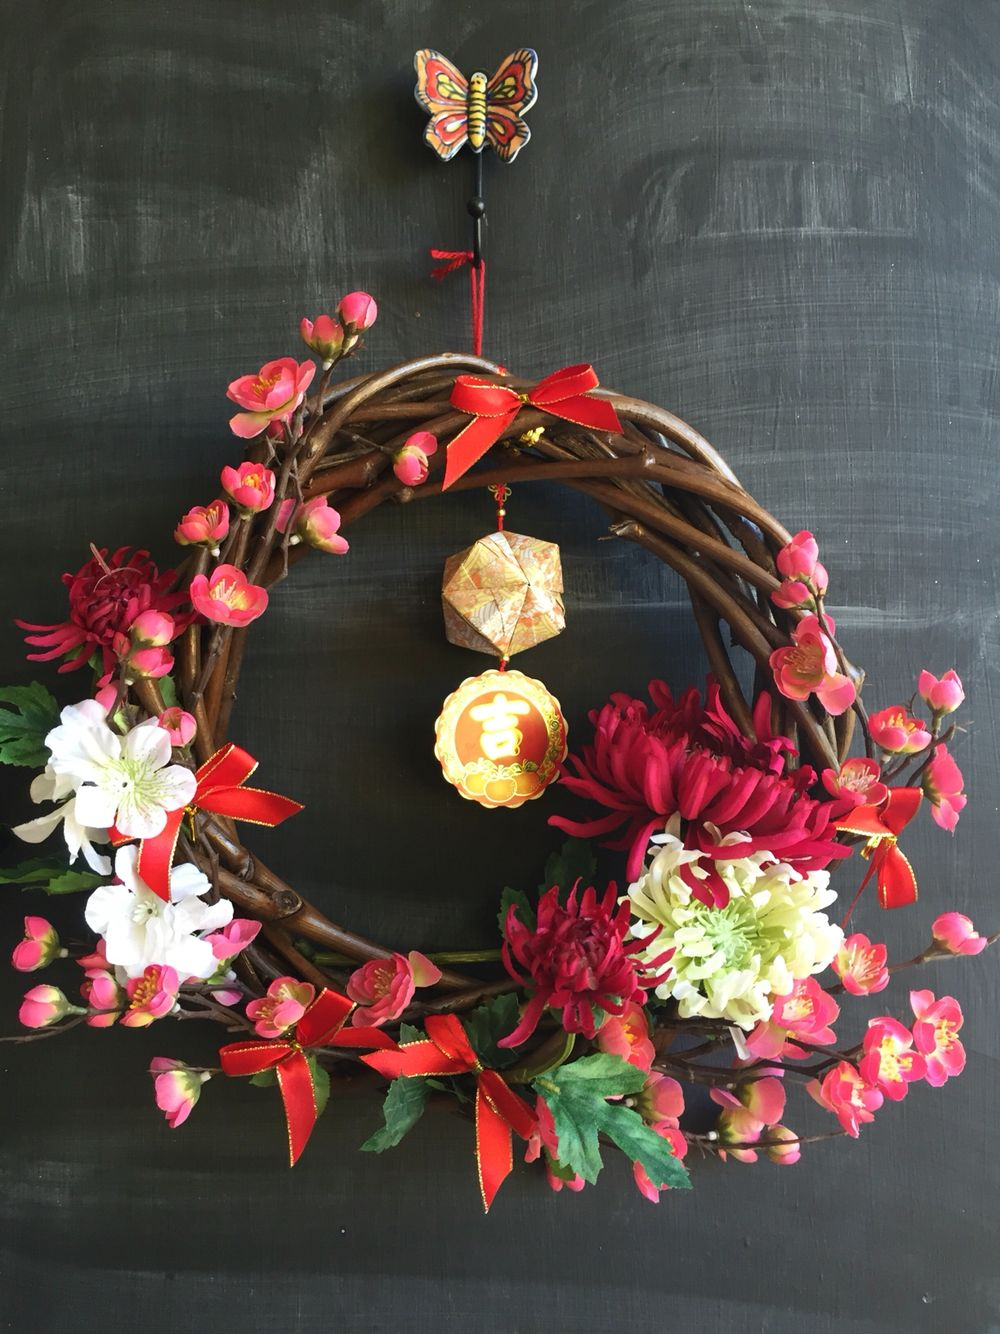 10 Chinese New Year decoration ideas that aren't tacky ...